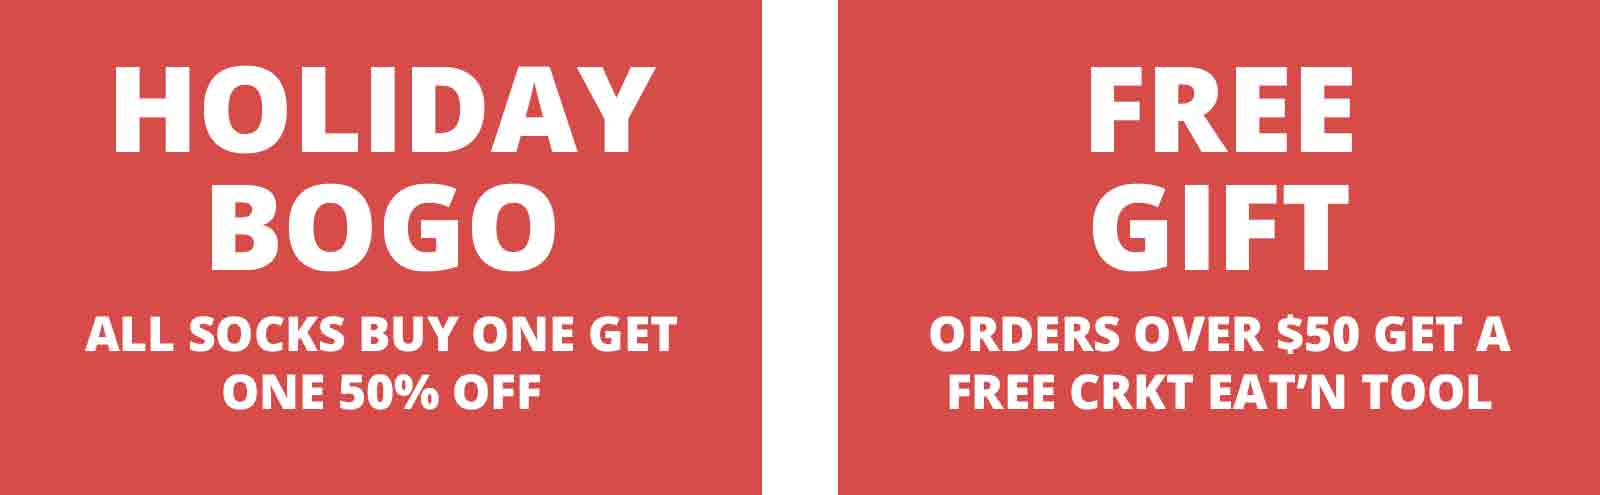 HOLIDAY BOGO 50% OFF + FREE GIFT WITH ORDERS OVER $50